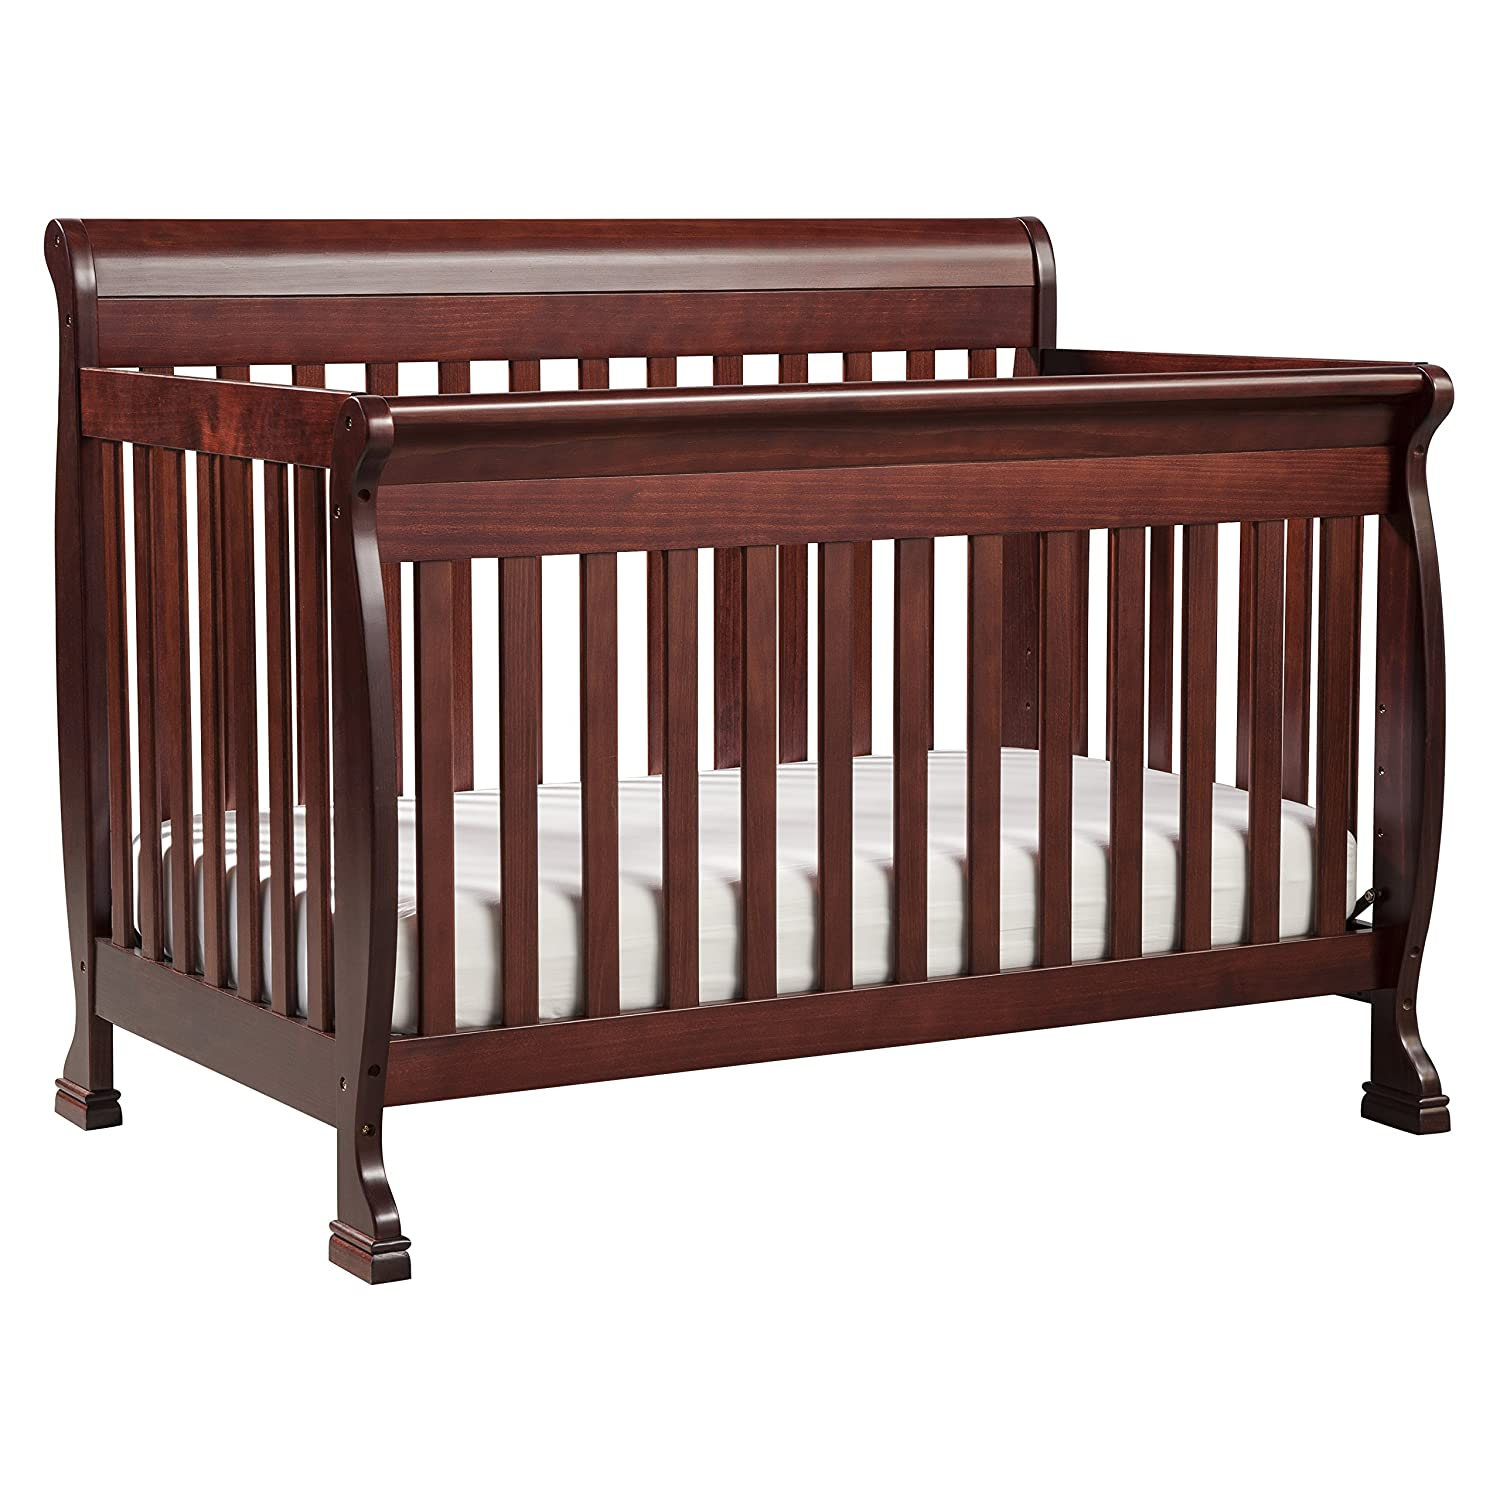 Baby crib for sale singapore - Amazon Com Davinci Kalani 4 In 1 Convertible Crib With Toddler Rail Cherry Baby